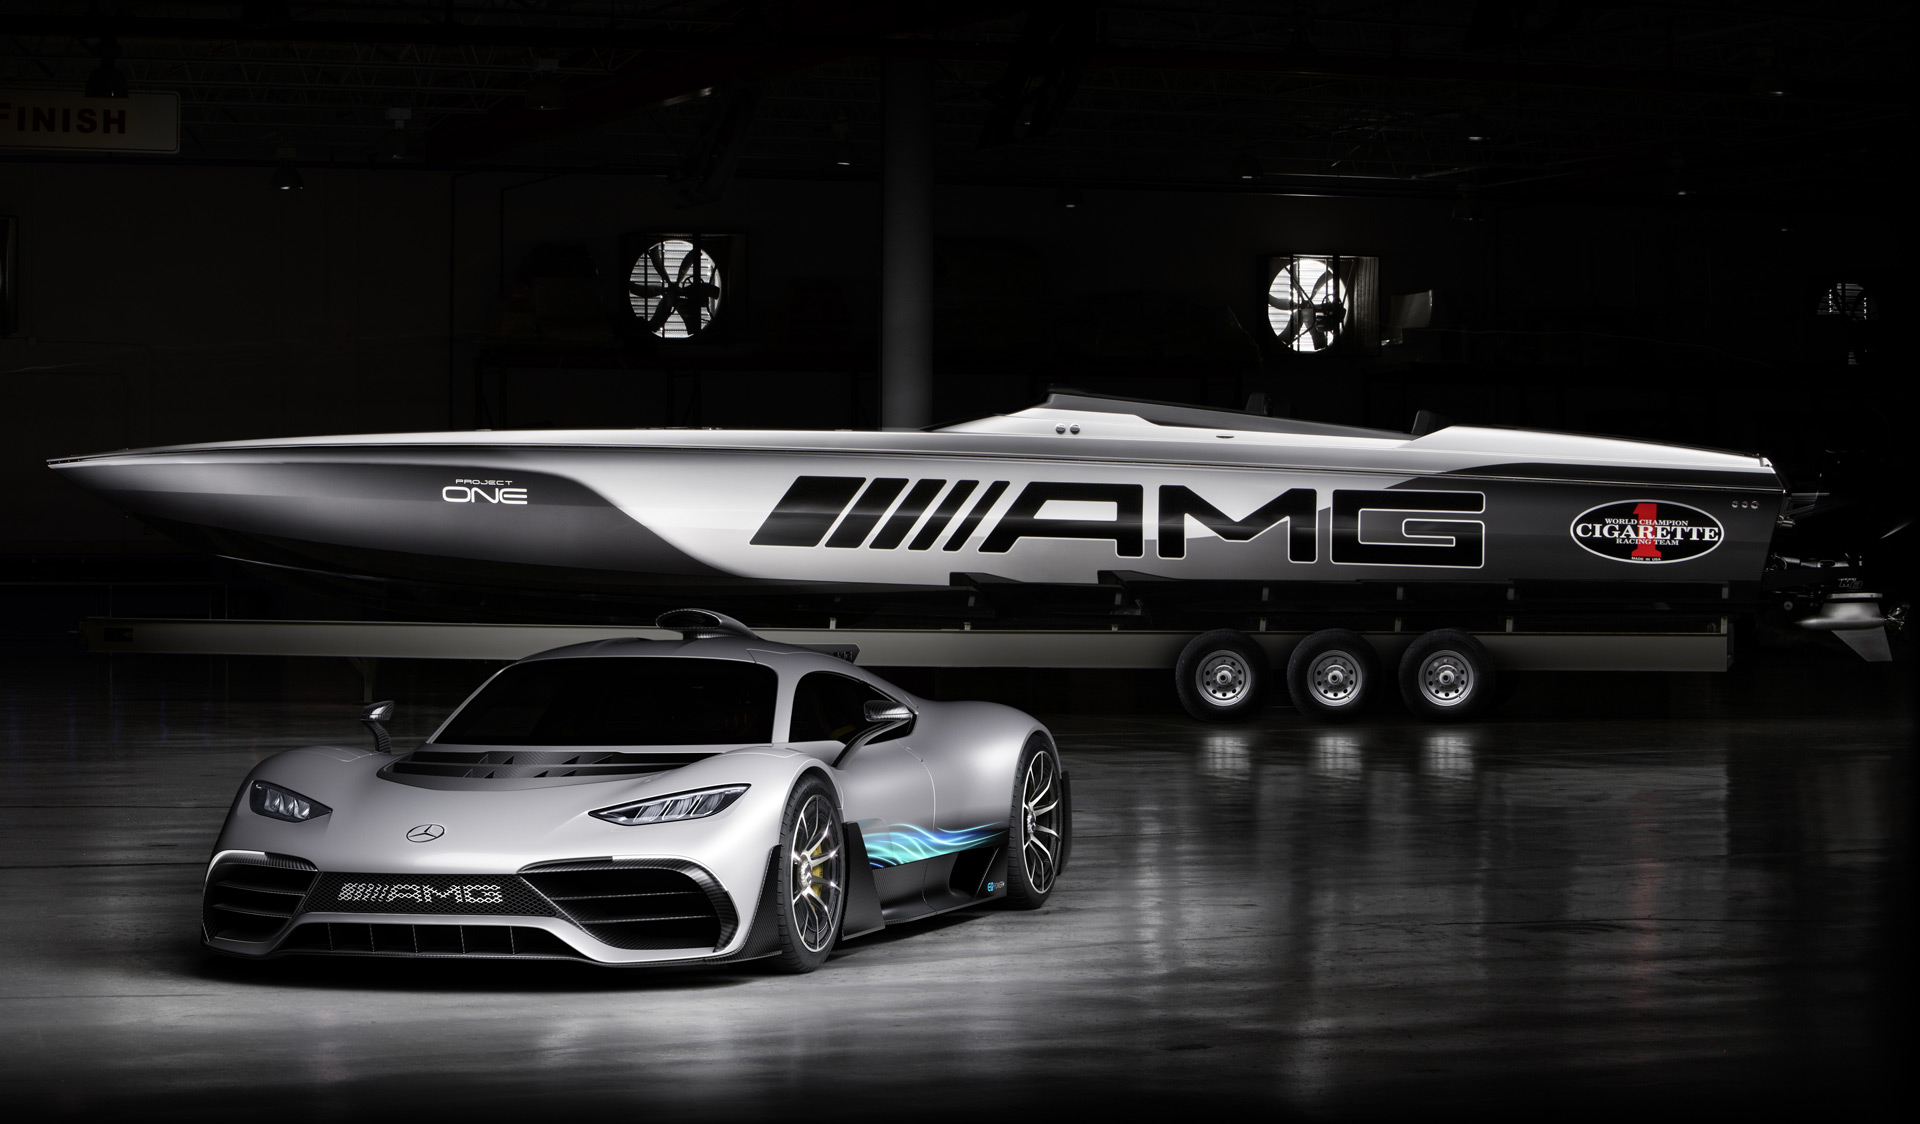 Cigarette Racing 515 Project One is a 3,100-horsepower ...